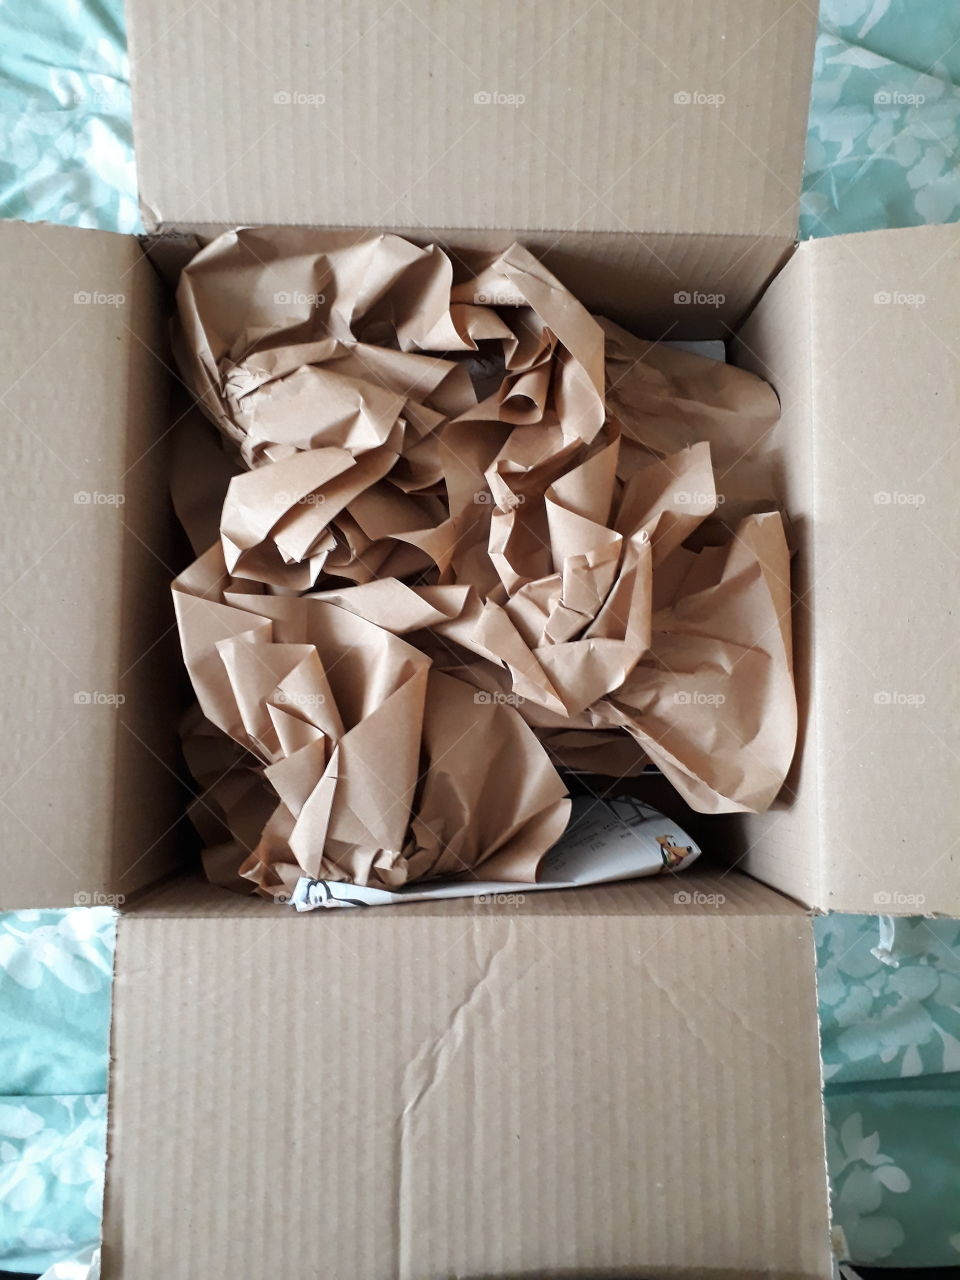 opened box with crunched up brown paper inside